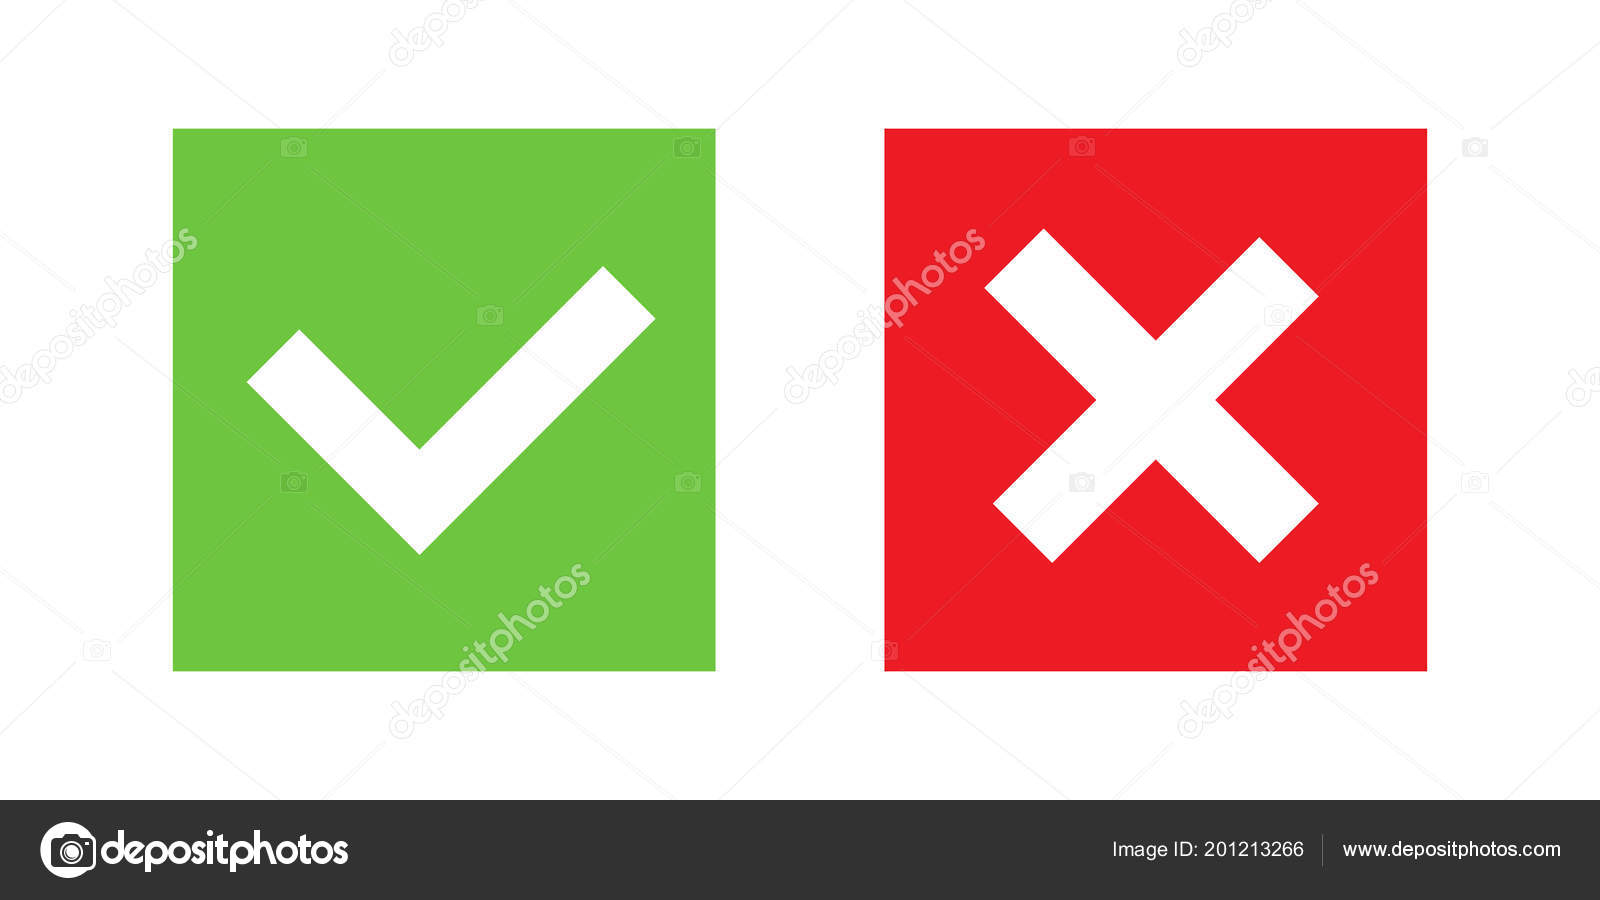 Creative vector illustration of green tick, red cross